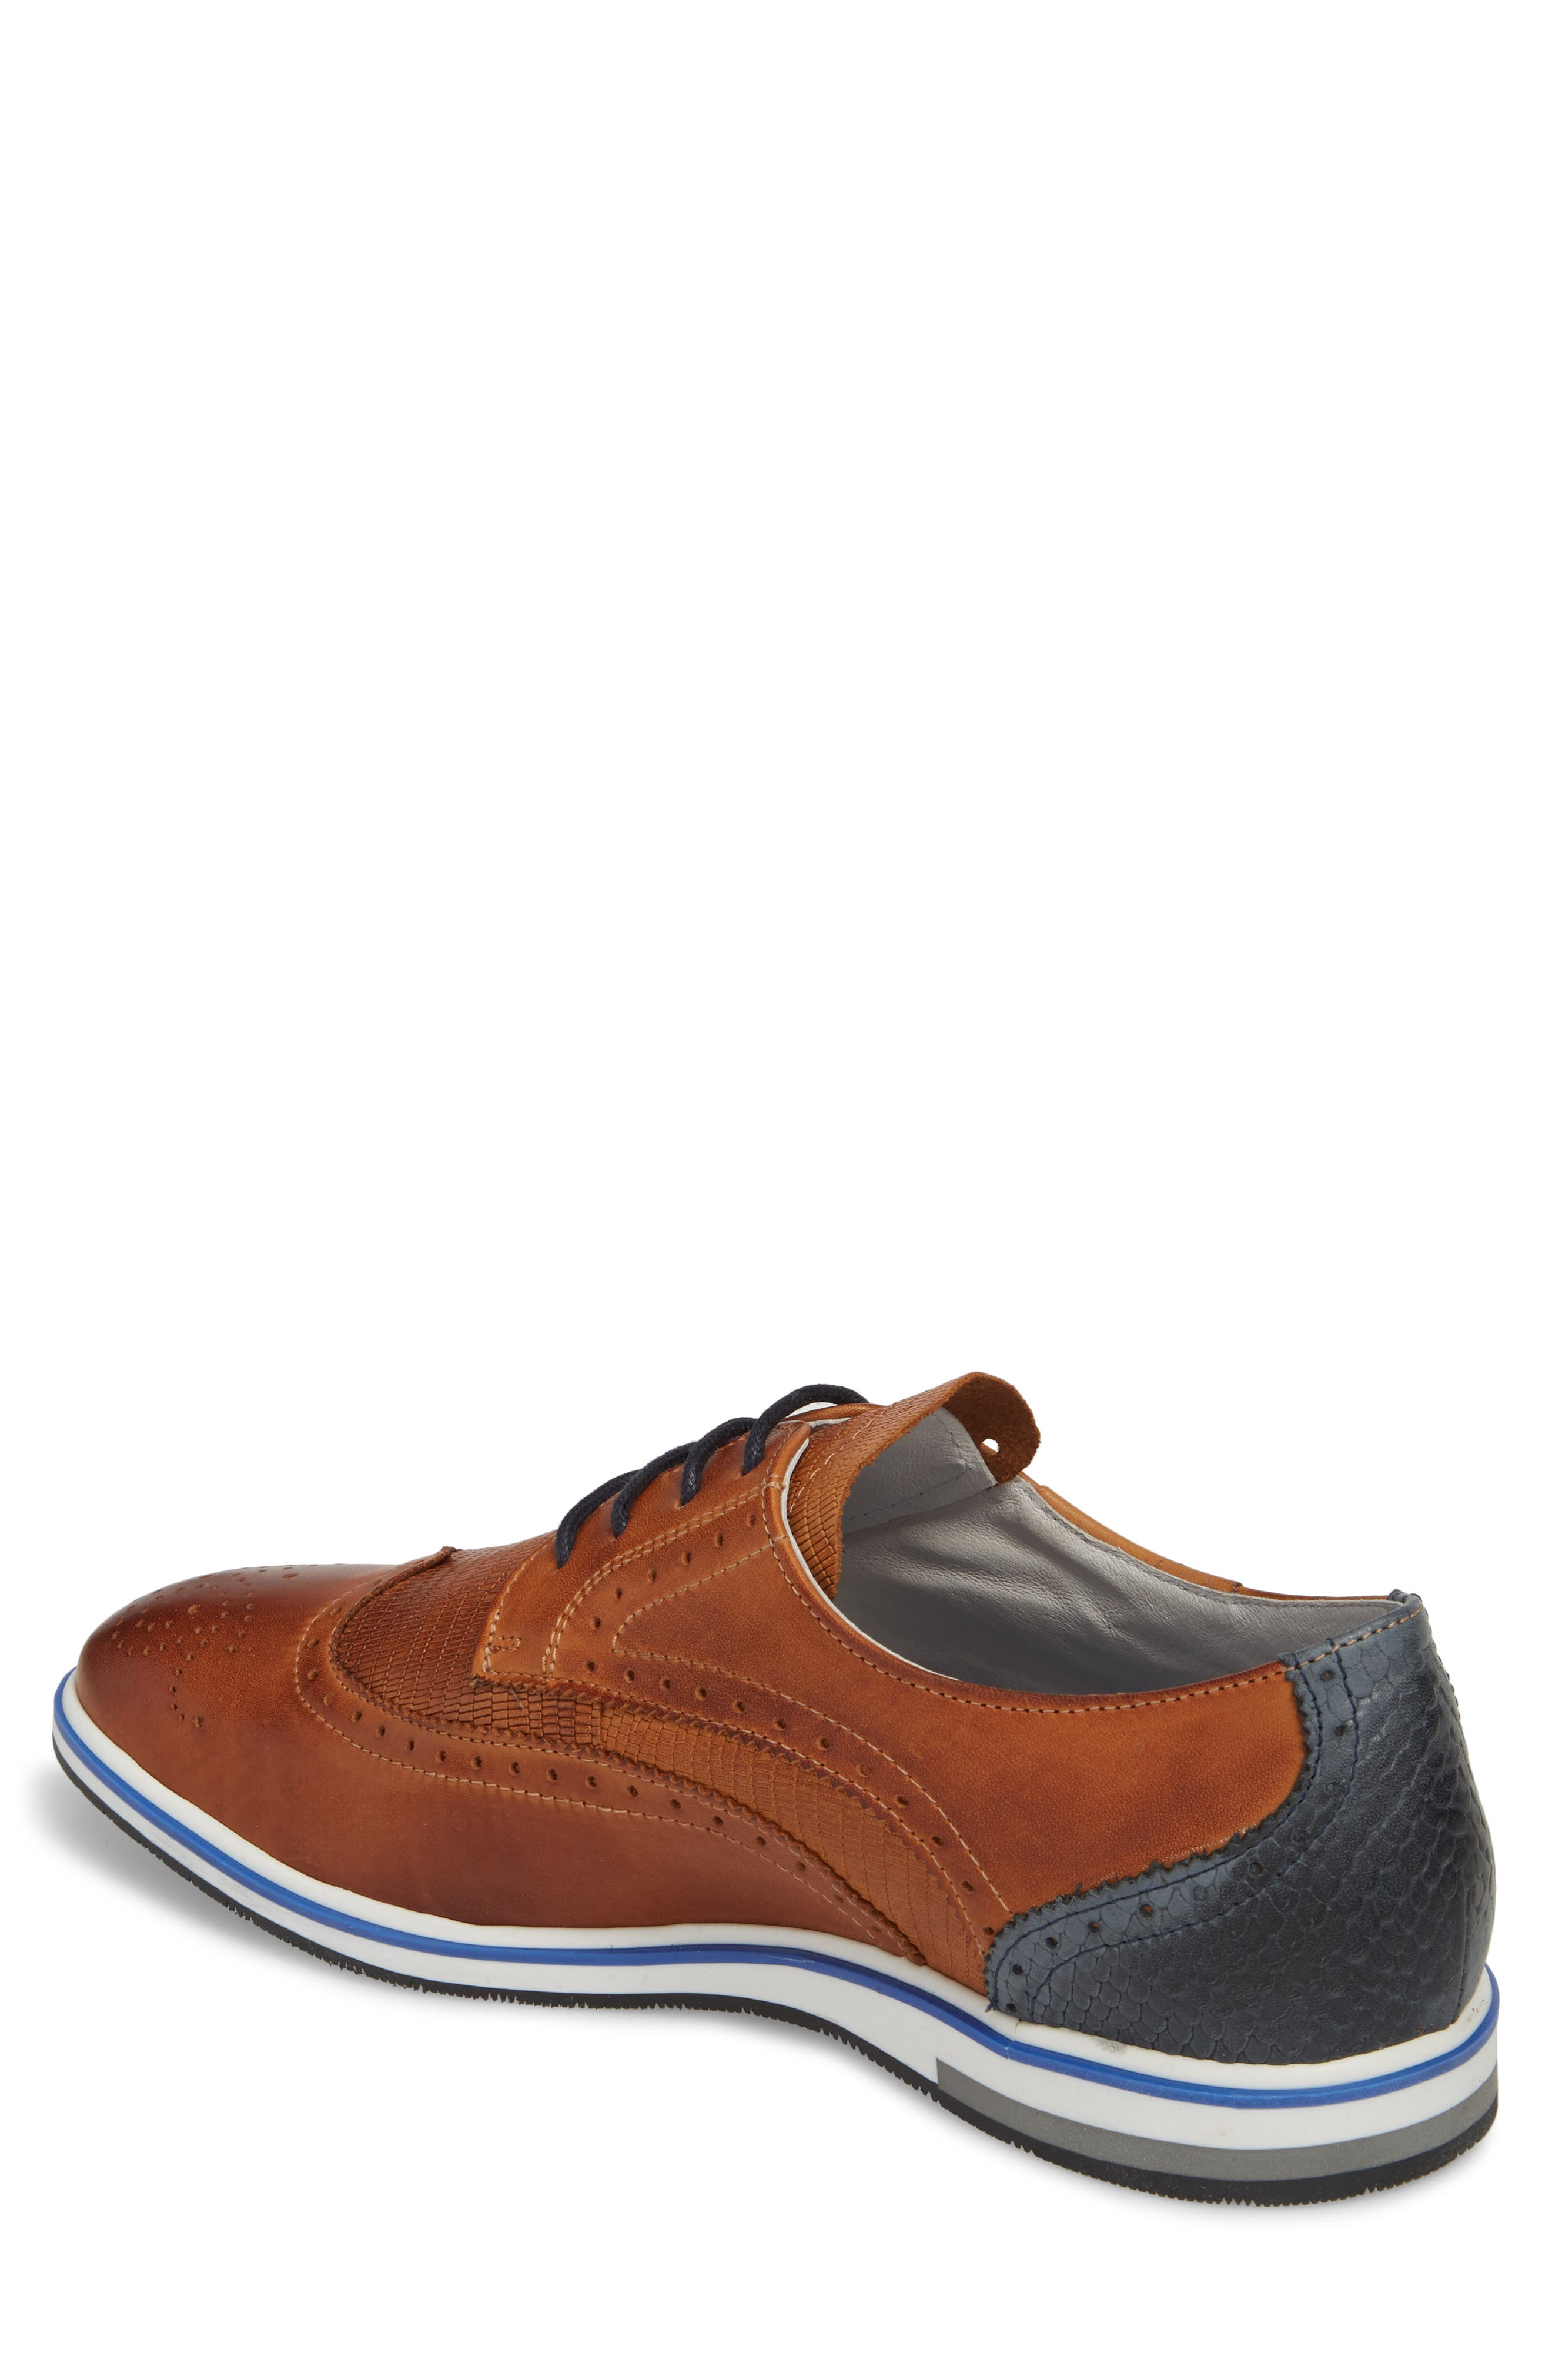 Pulsano Textured Wingtip,                             Alternate thumbnail 2, color,                             Cognac/ Denim Leather